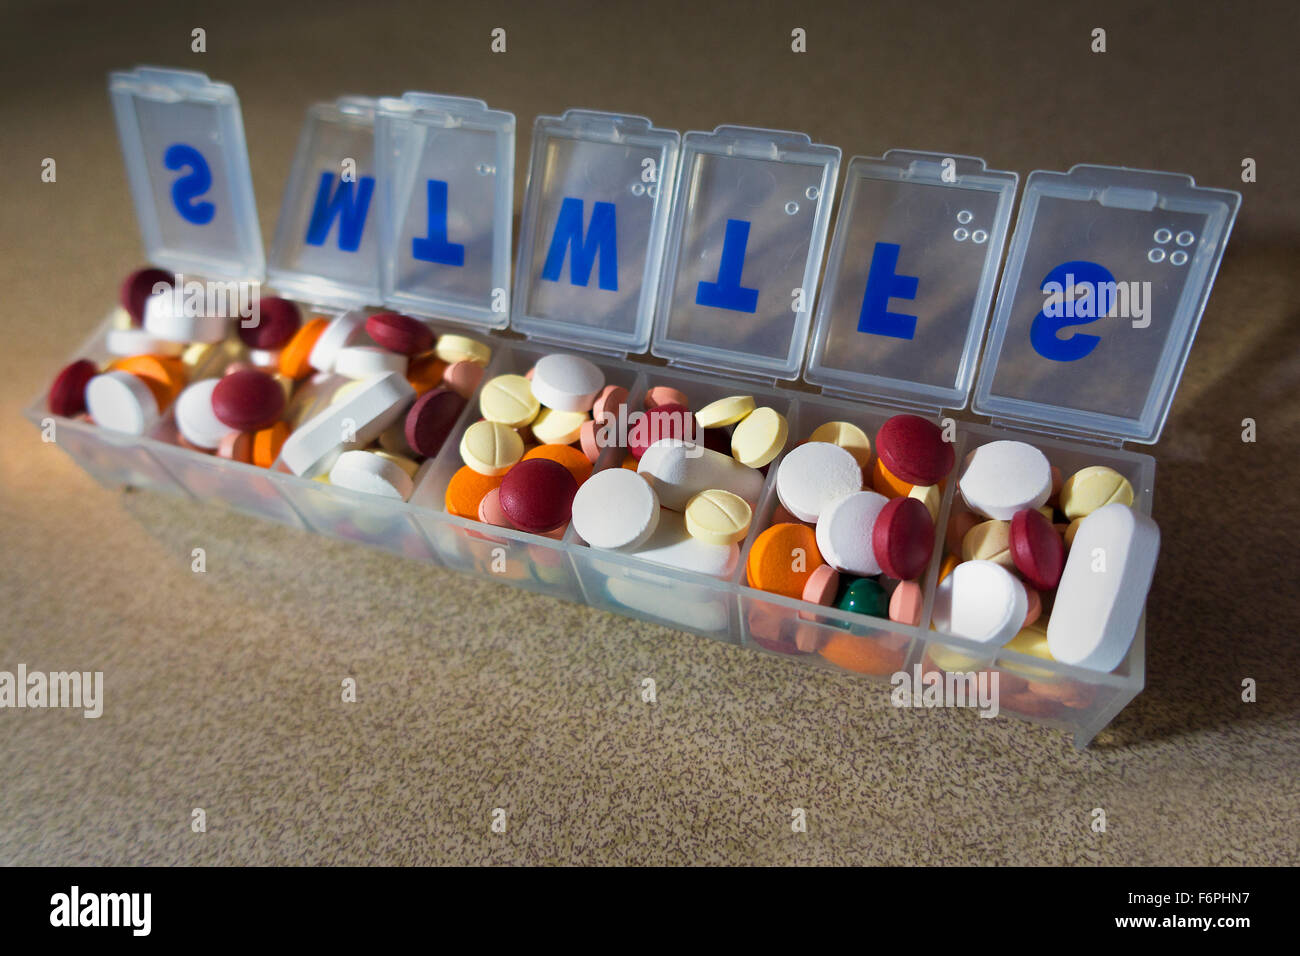 pill medication organizer filled to capacity - Stock Image